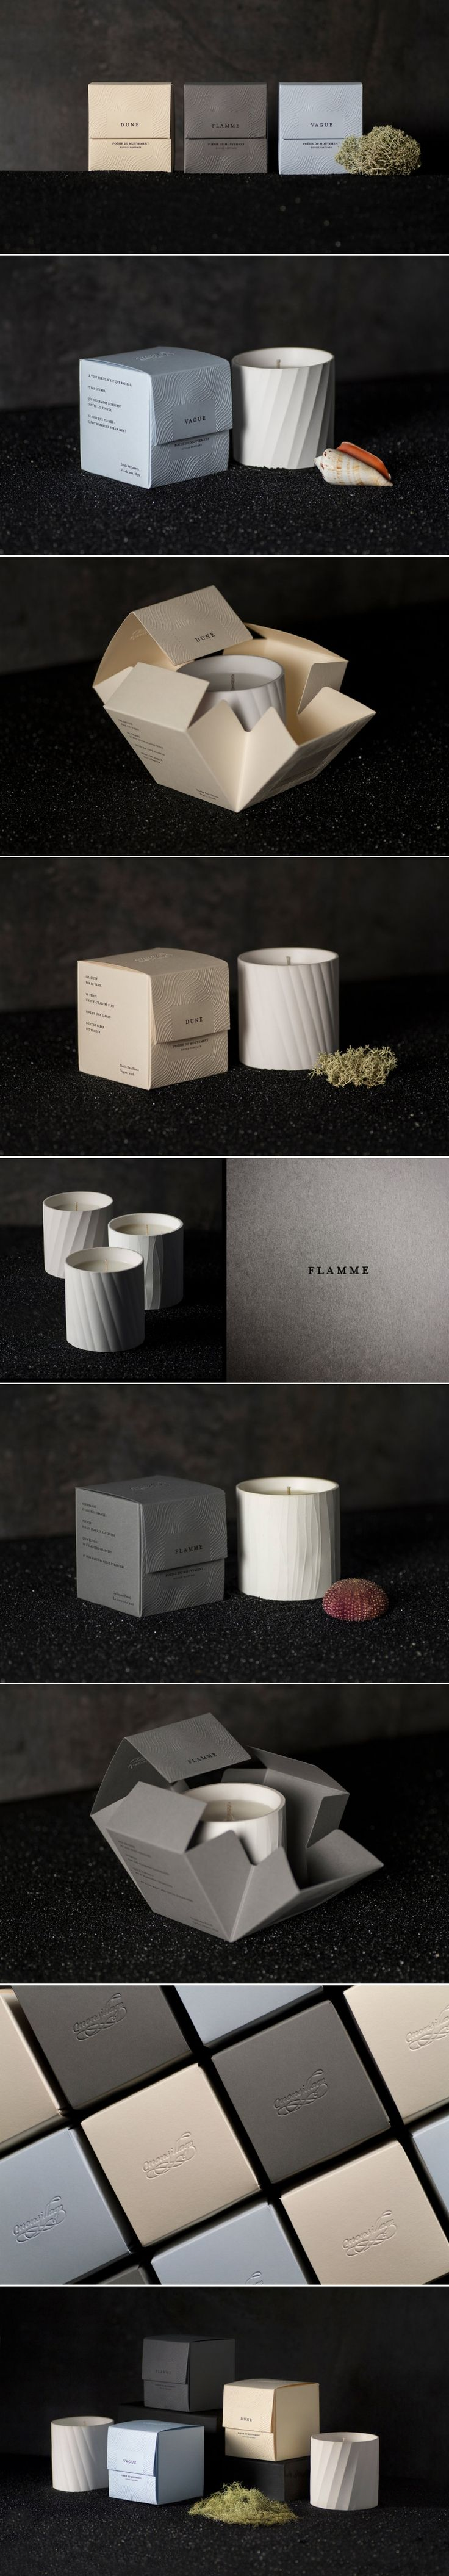 Monsillage Candles Come With Beautifully Textured Packaging — The Dieline | Packaging & Branding Design & Innovation News